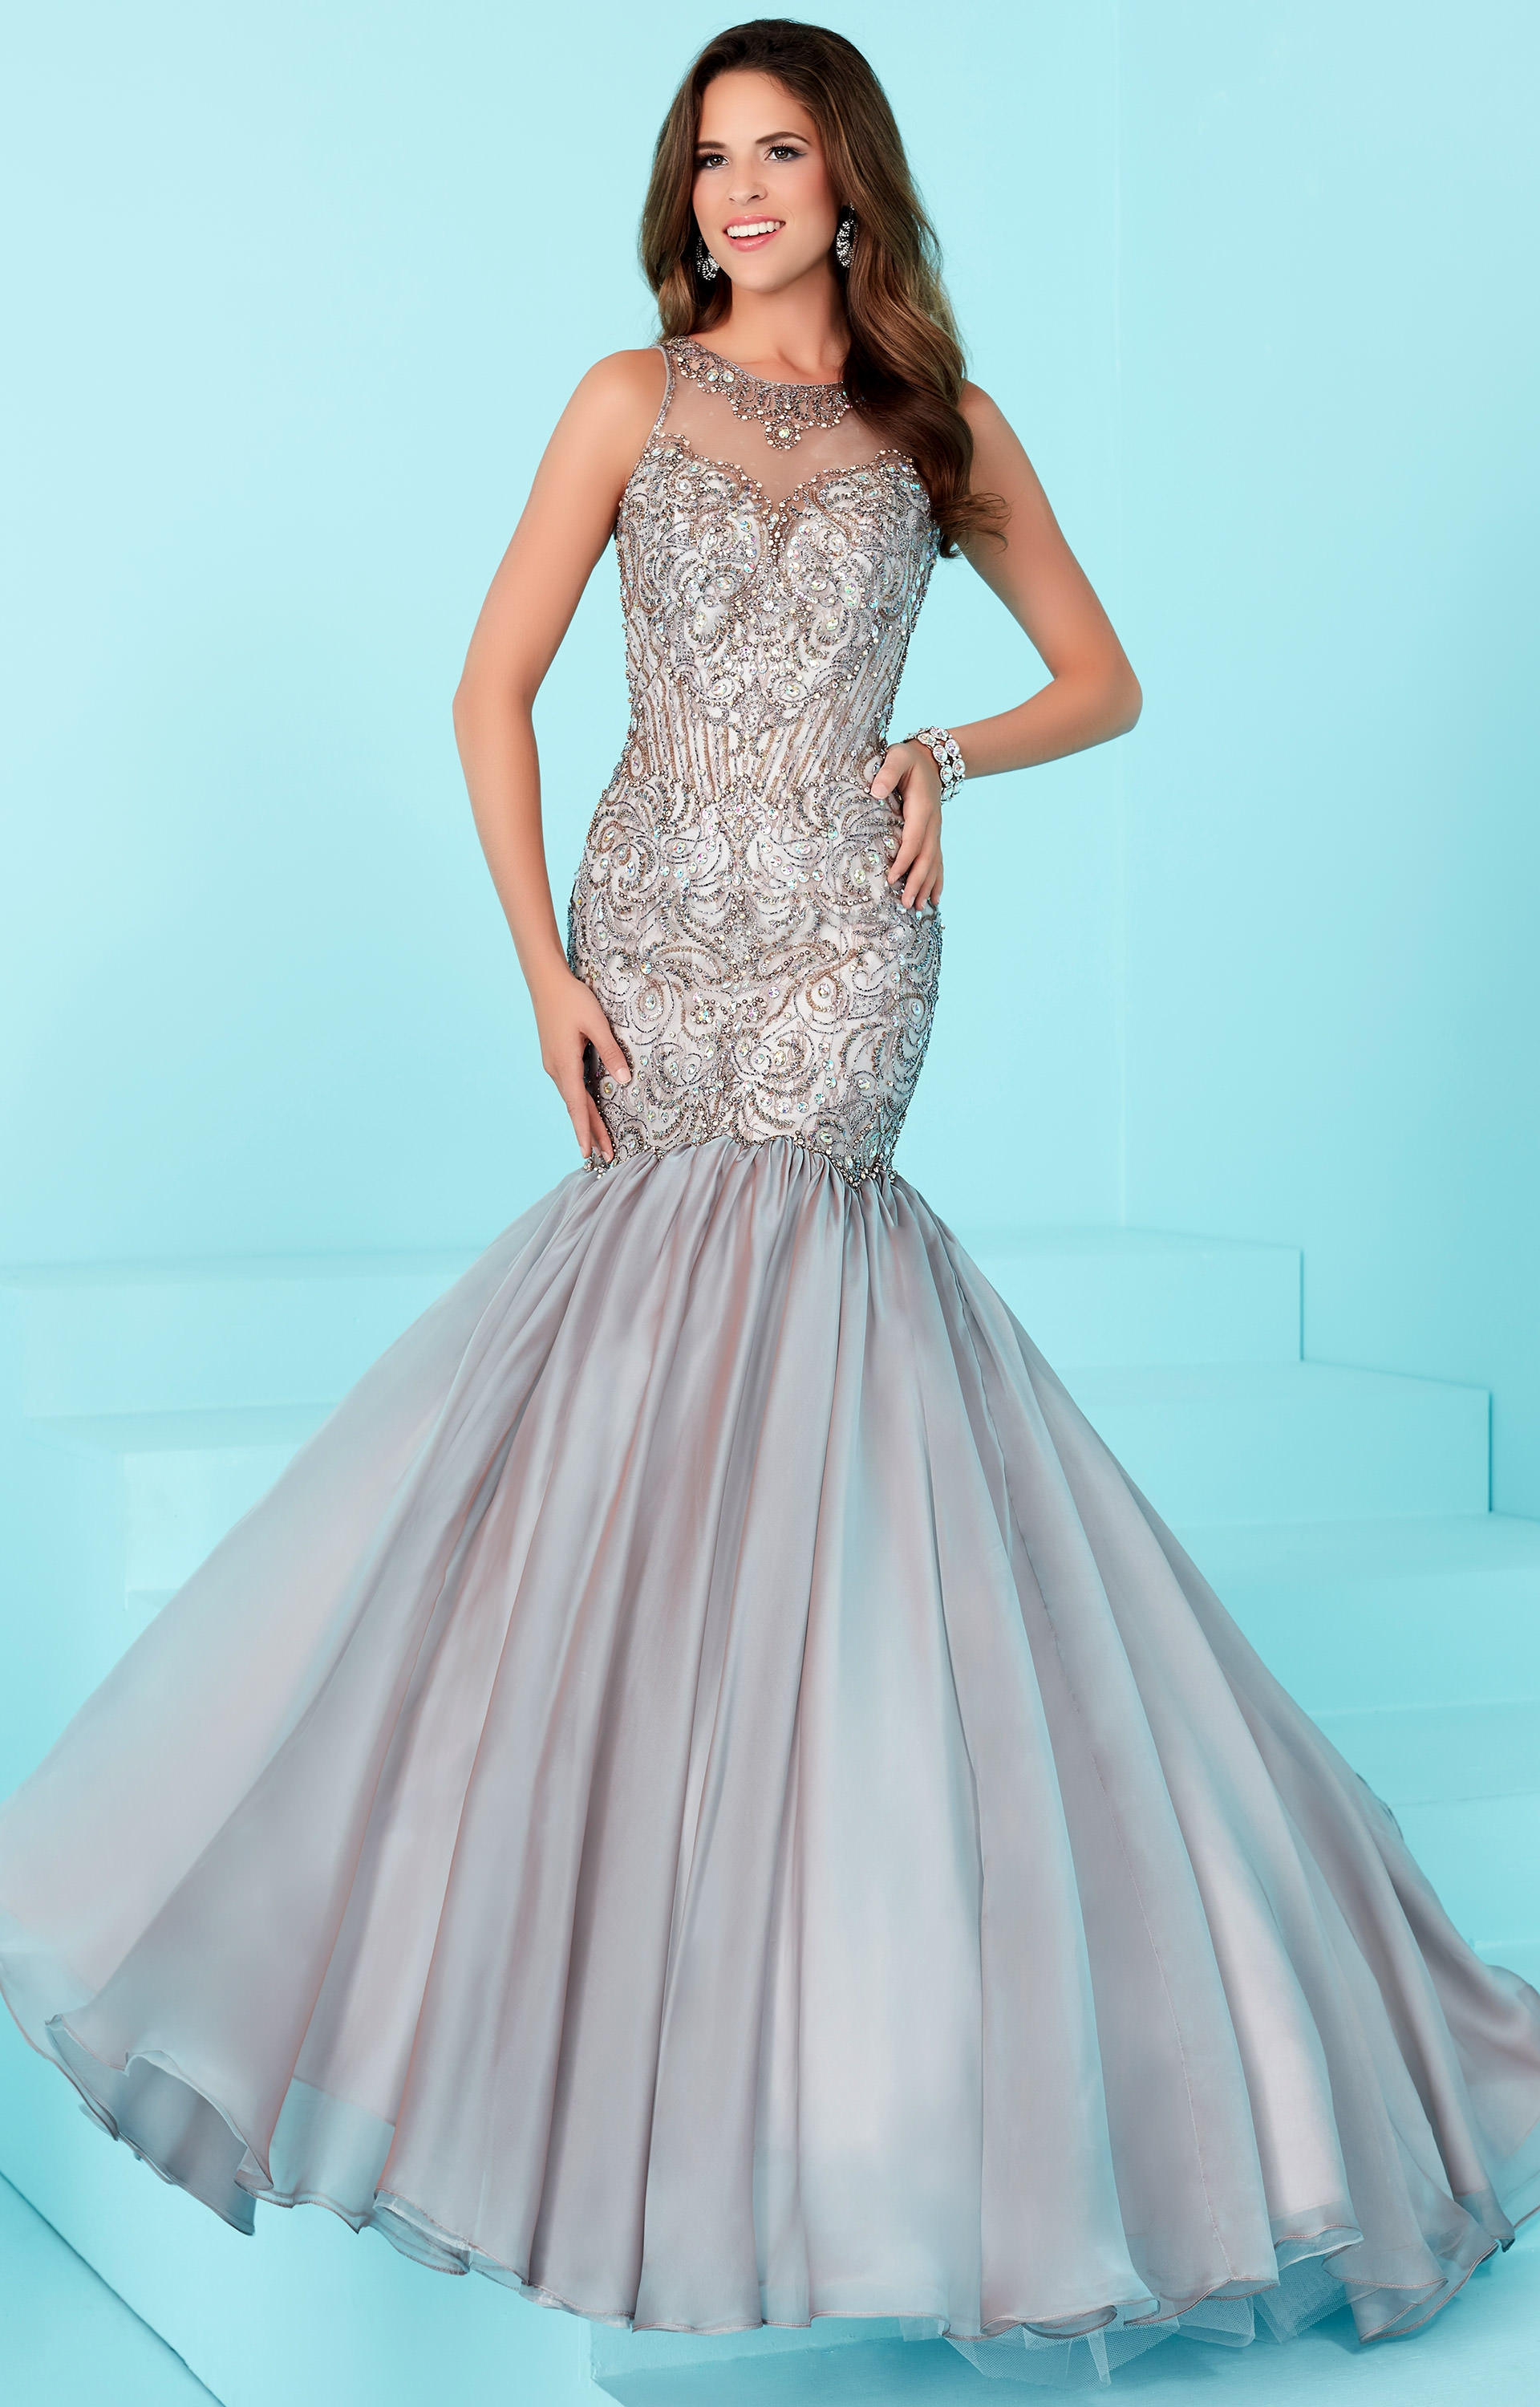 Tiffany Designs 16205 Fully Beaded Mermaid With Straps